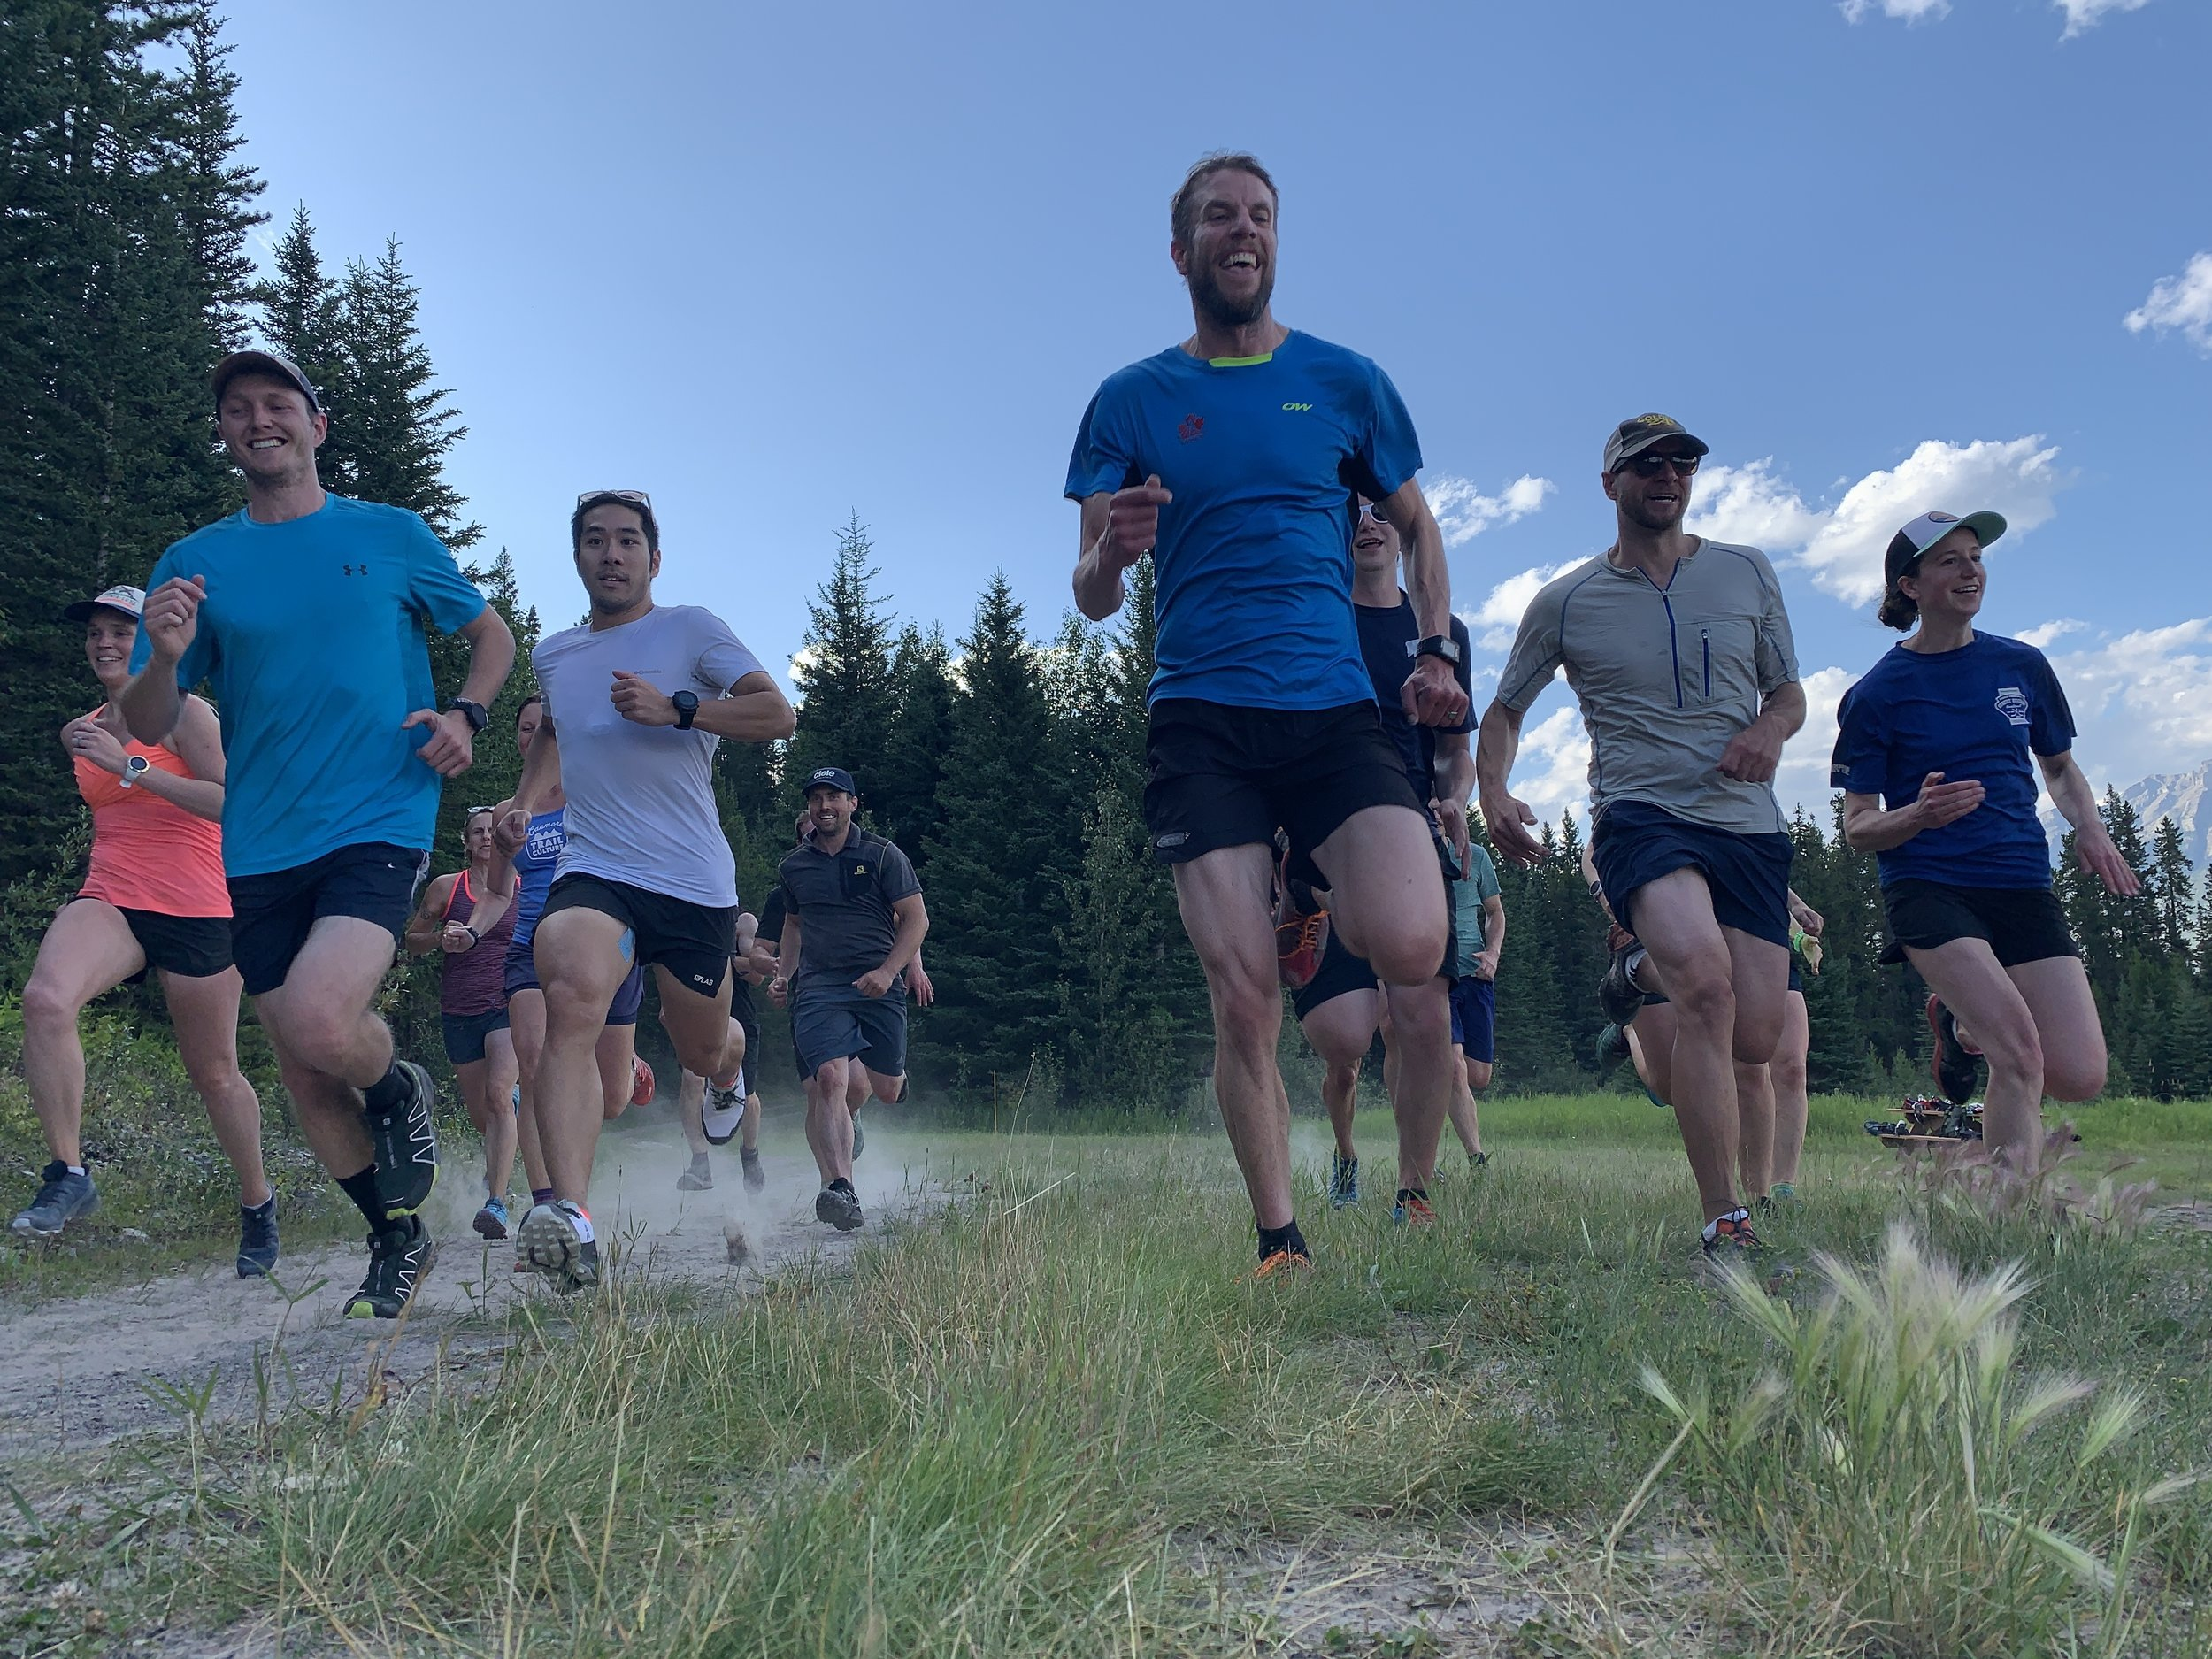 Dirtbag runners looking after their knee cartilage! -